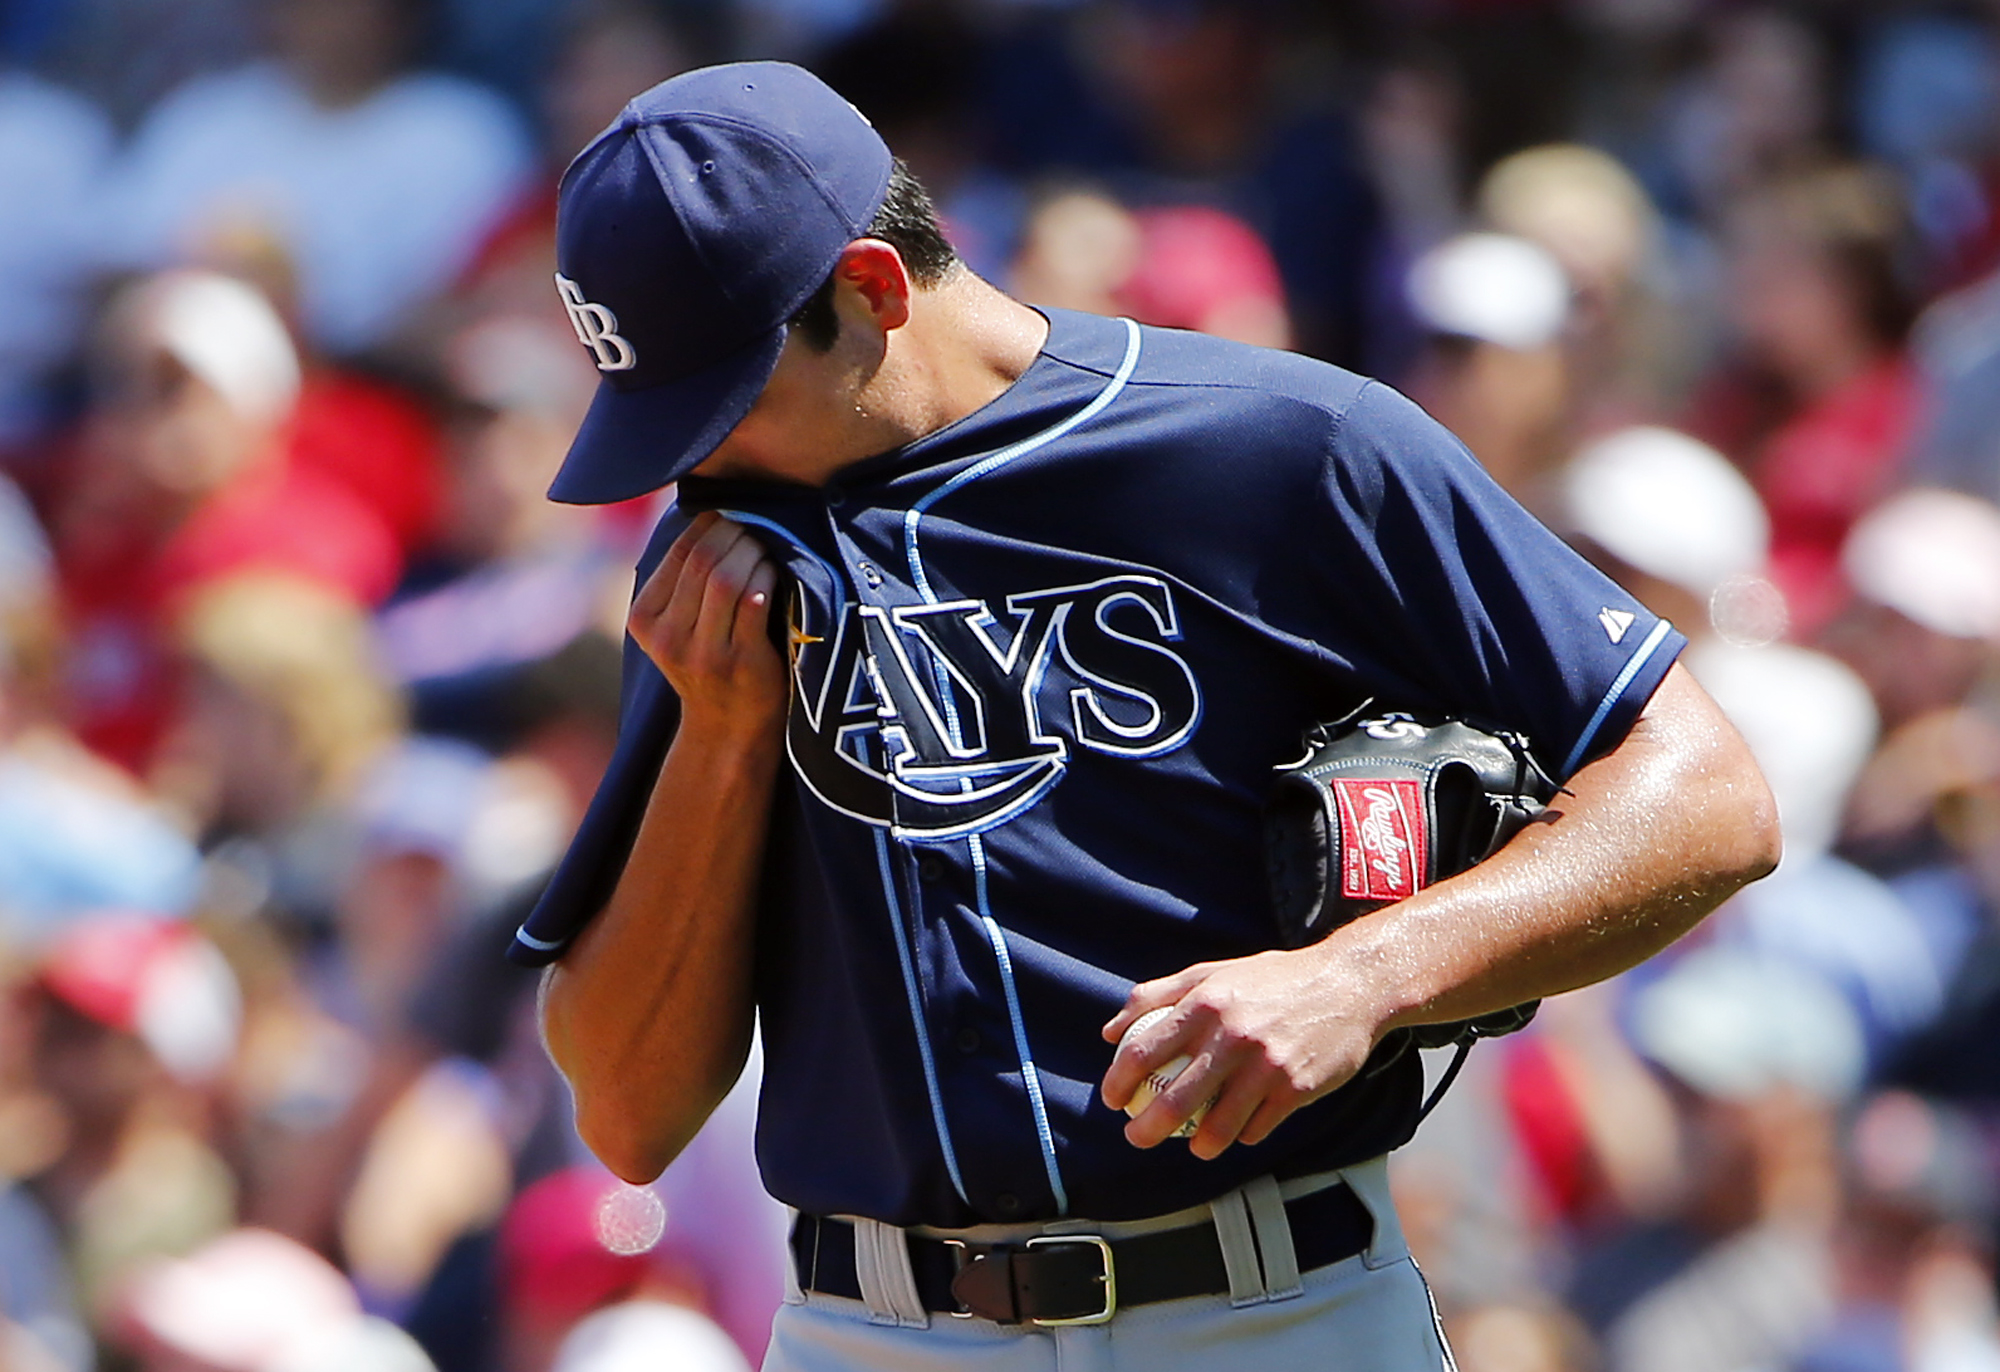 Tampa Bay Rays starting pitcher Matt Moore heads back to the mound after giving up a run to the Boston Red Sox during the third inning of a baseball game at Fenway Park in Boston, Saturday, Aug. 1, 2015. (AP Photo/Winslow Townson)